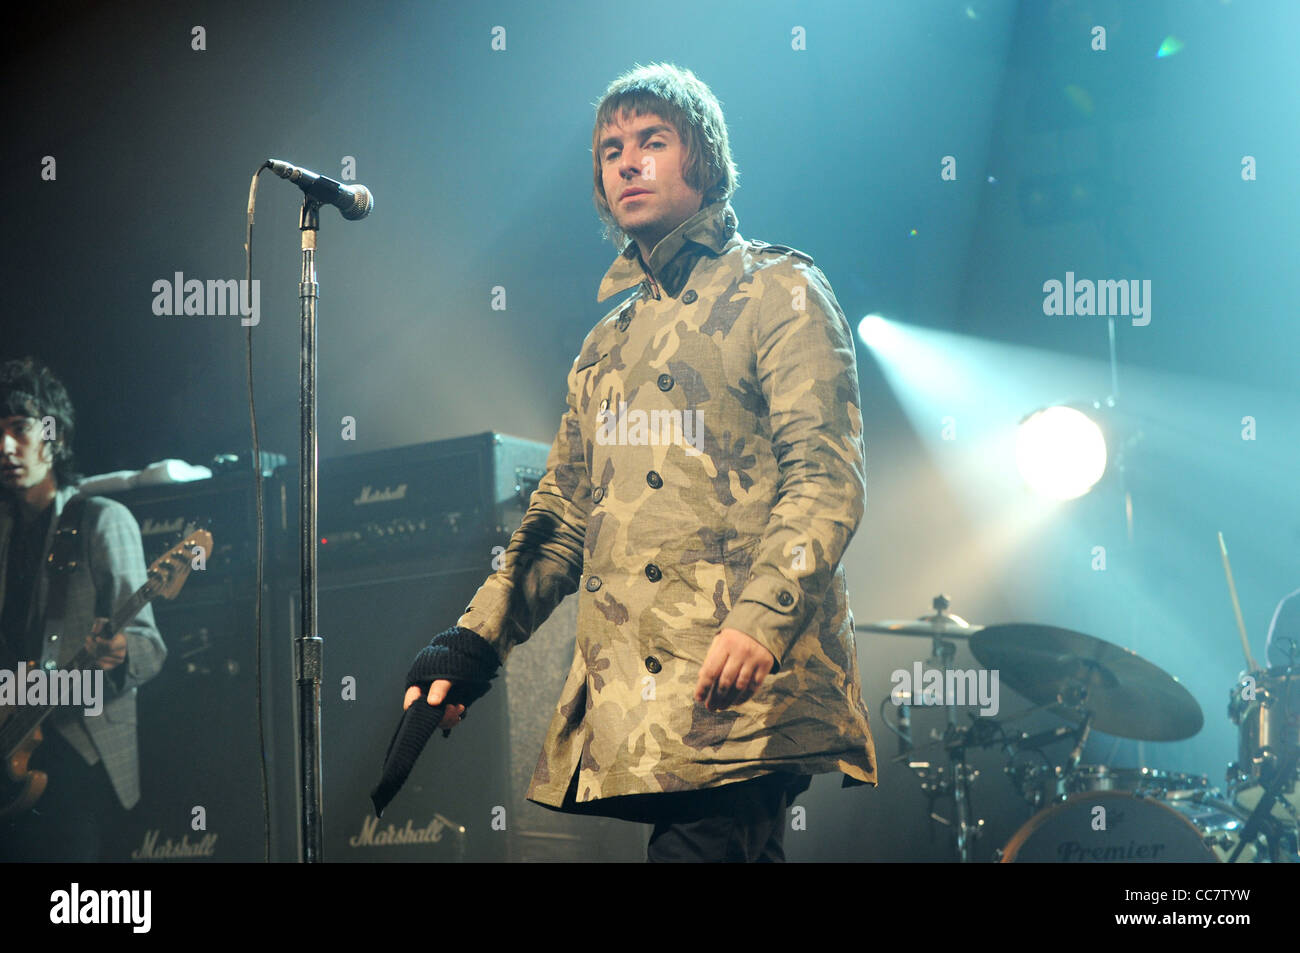 LIAM GALLAGHER BEADY EYE (2011) - Stock Image